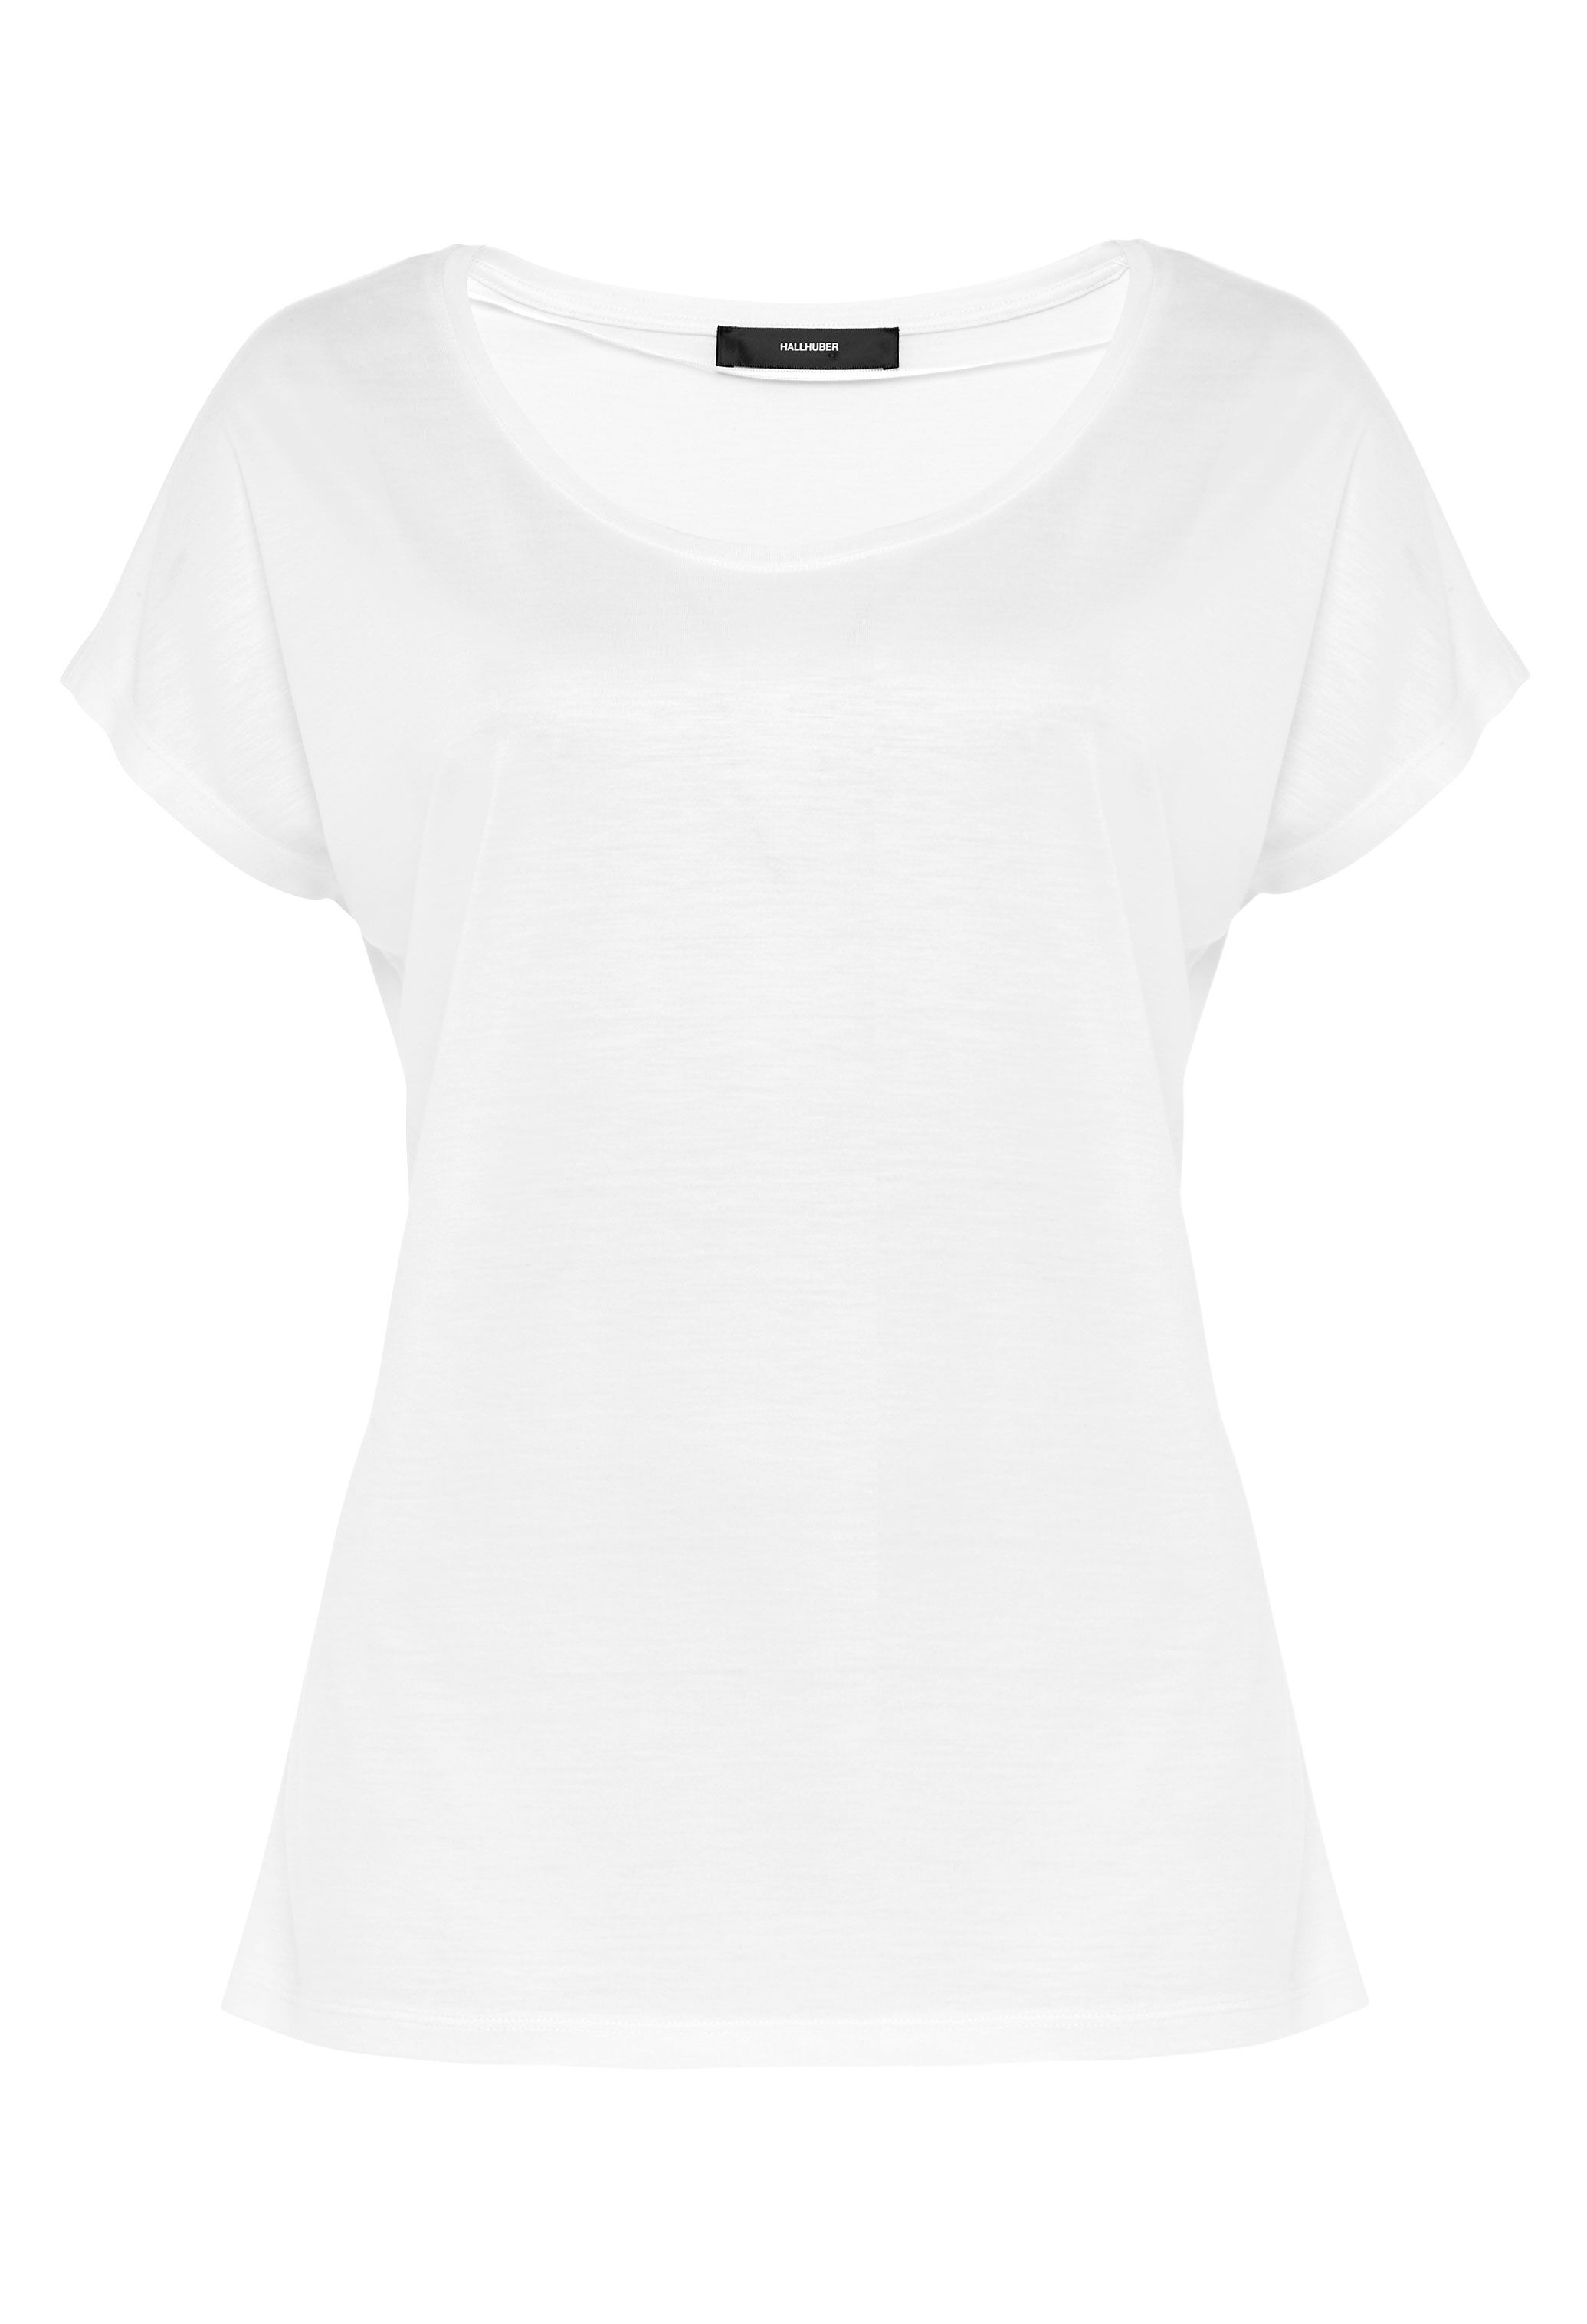 Hallhuber Basic Tee With Plunging Neckline, Off White